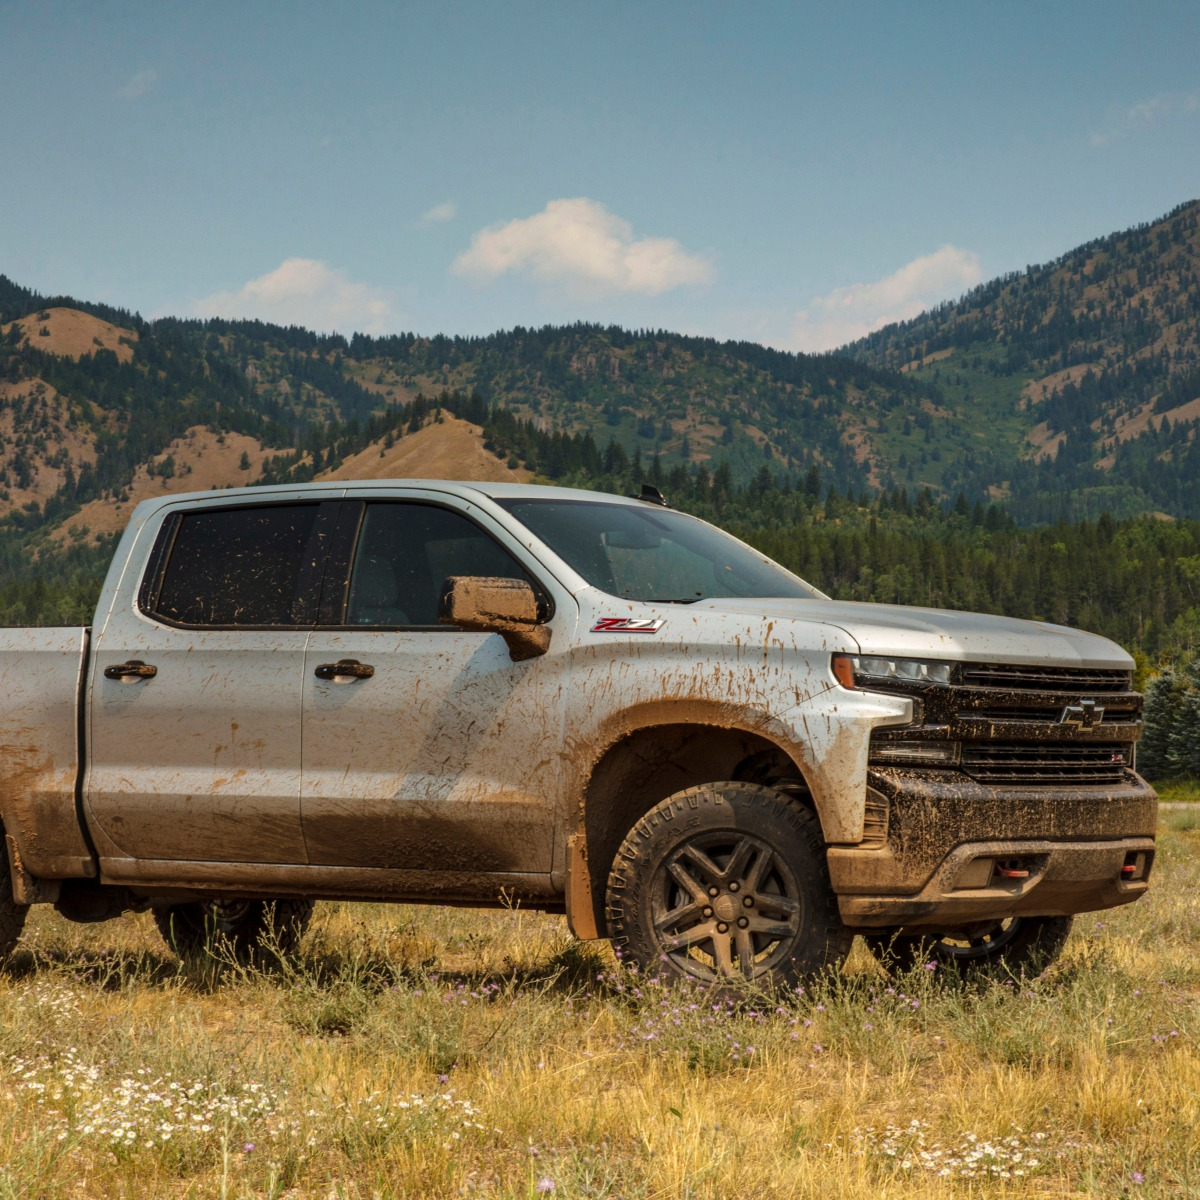 Review 72 Hours With The 2019 Chevy Silverado 1500 Lt Trail Boss Z71